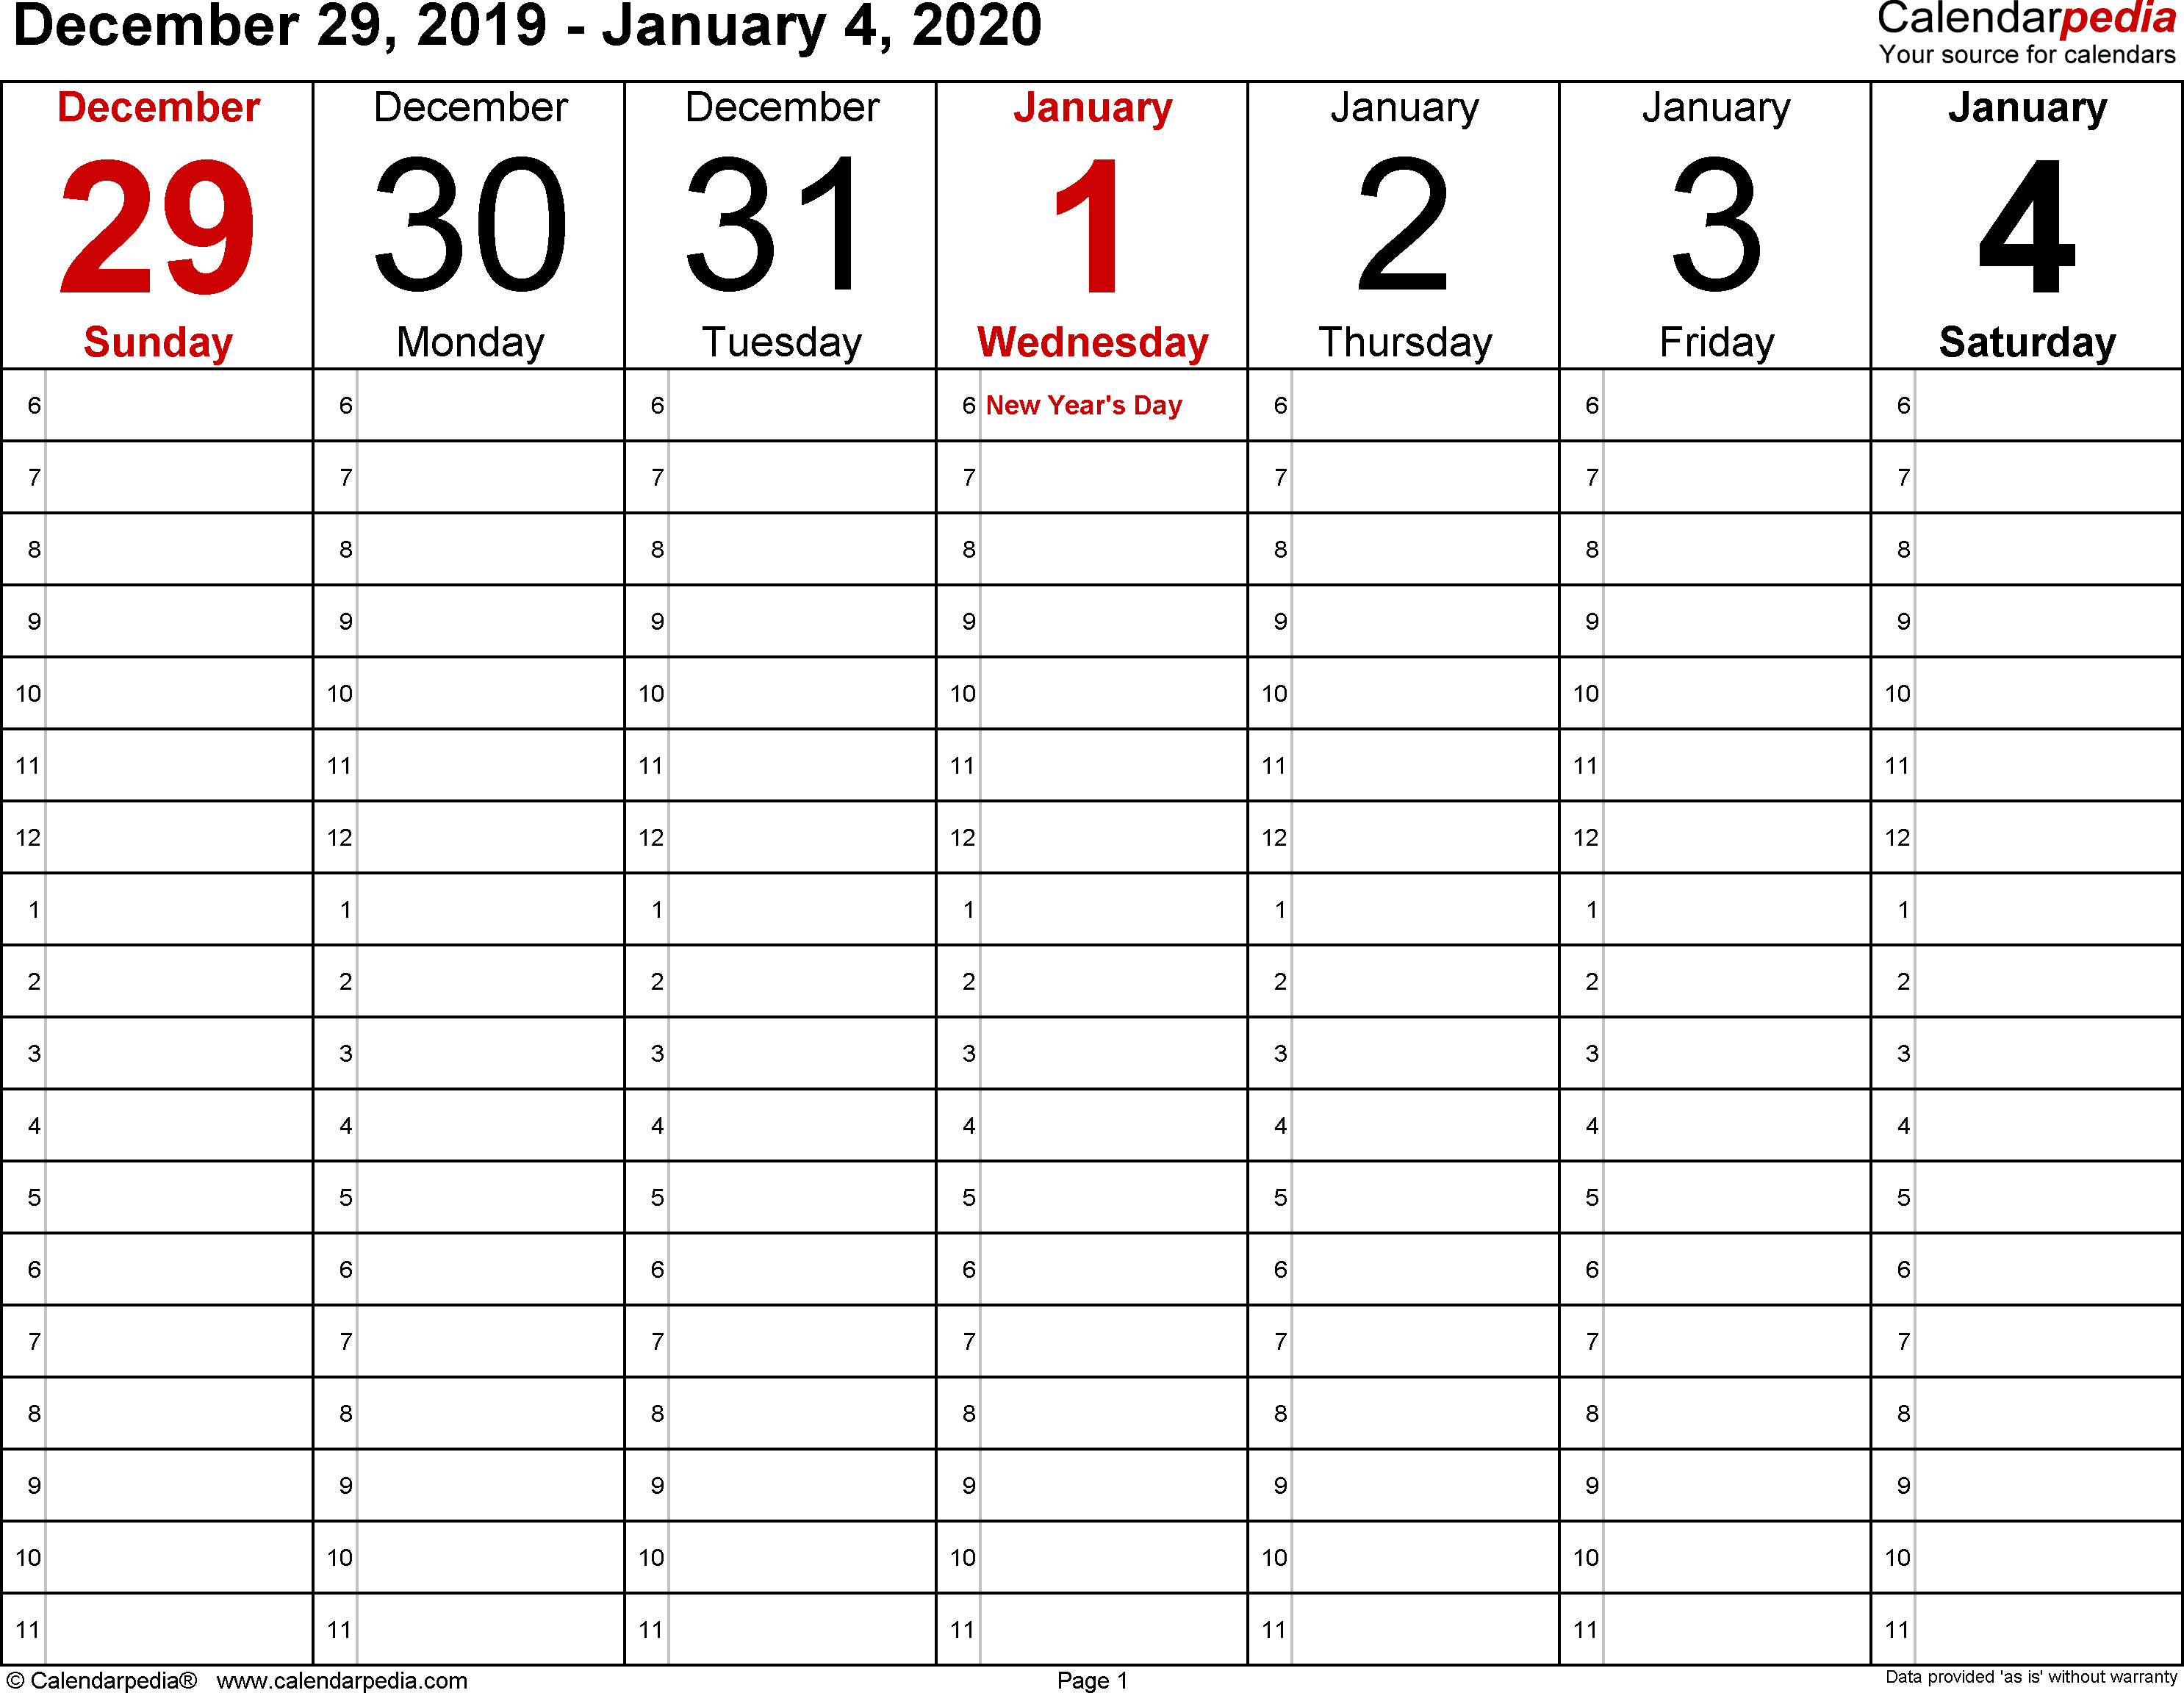 Weekly Calendar 2020 For Word - 12 Free Printable Templates throughout Printable 8.5 X 11 2020 Calendar